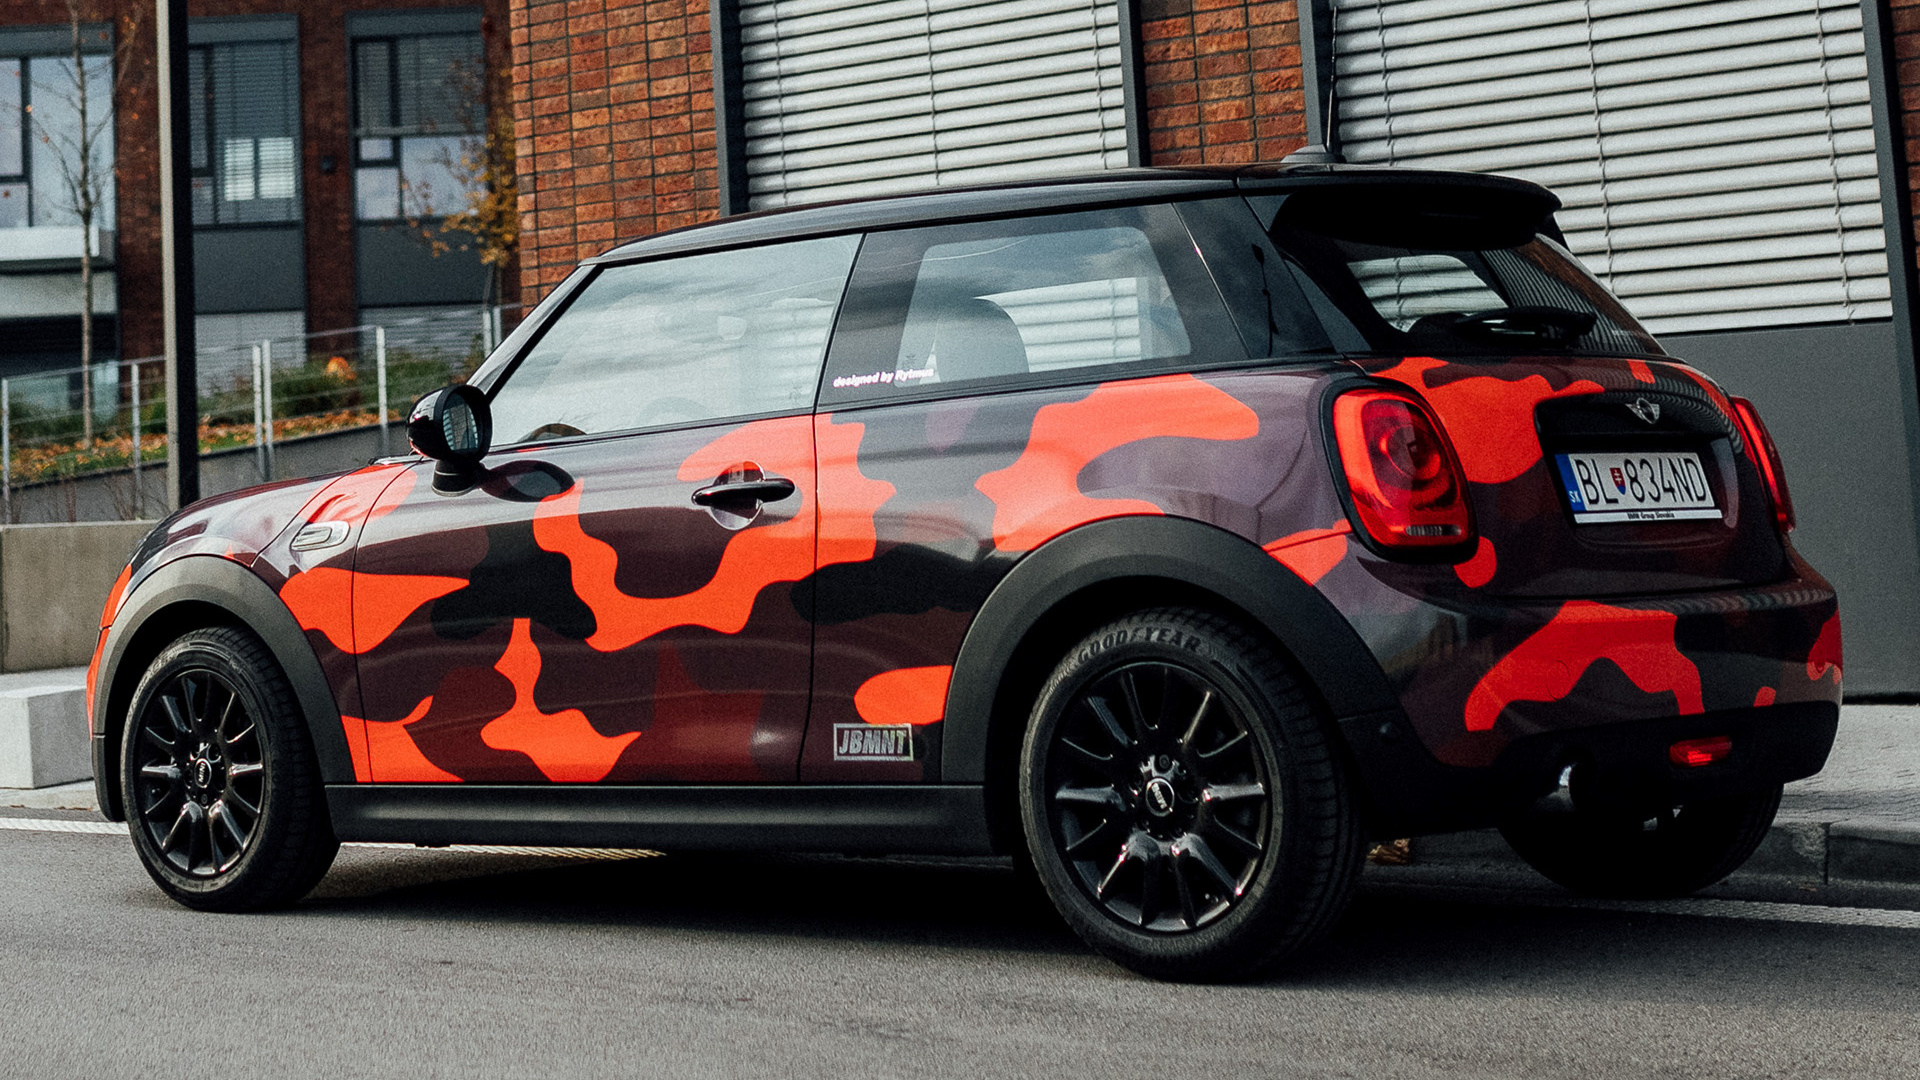 Mini Cooper Design Camo Red 3 Door By Patrik 2017